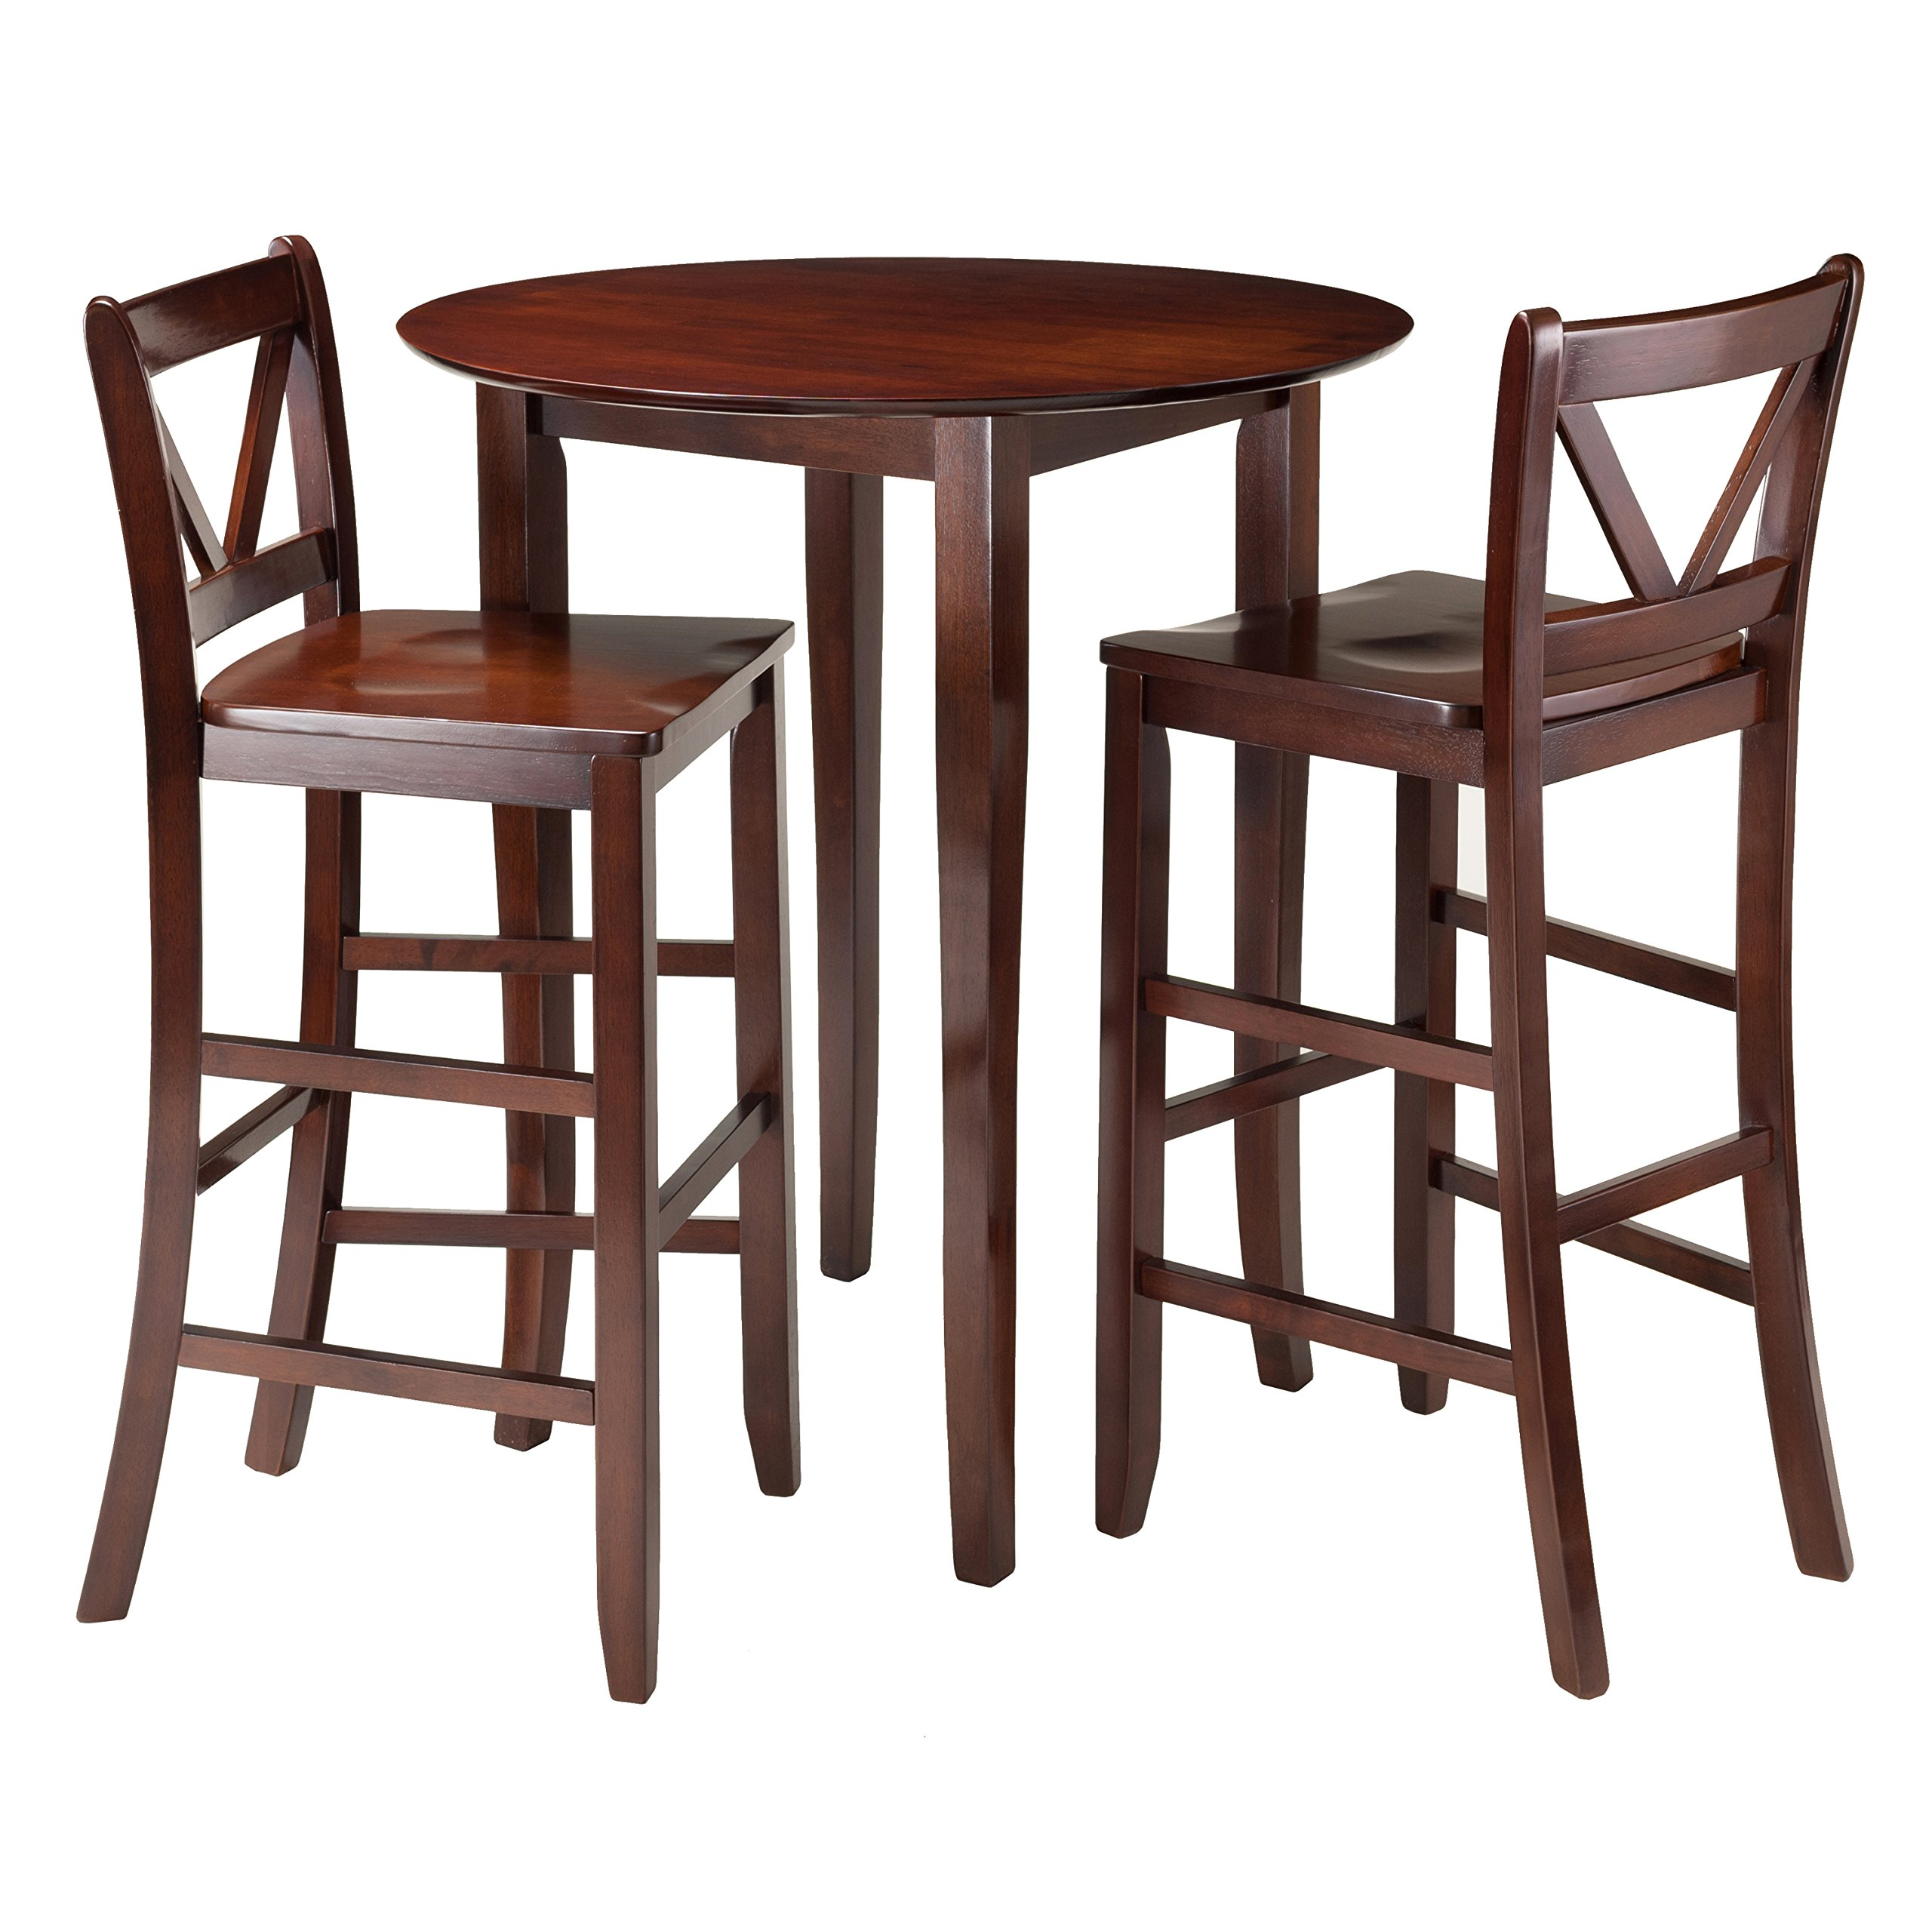 Winsome 3-Piece Fiona High Round Table with 2 Bar V-Back Stool, Brown